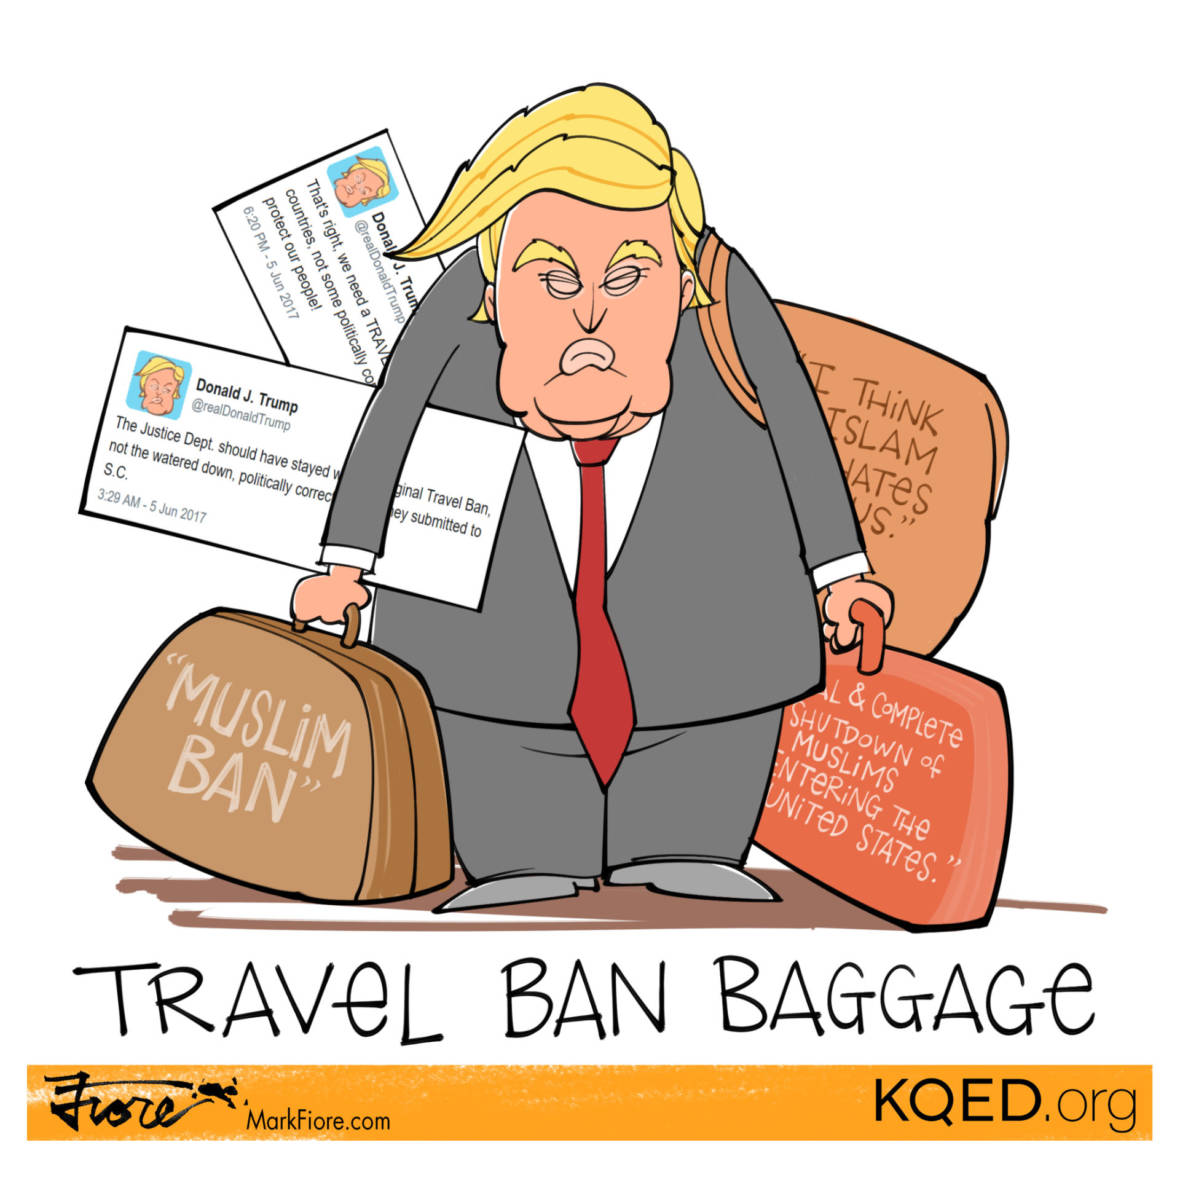 Travel Ban Baggage by Mark Fiore